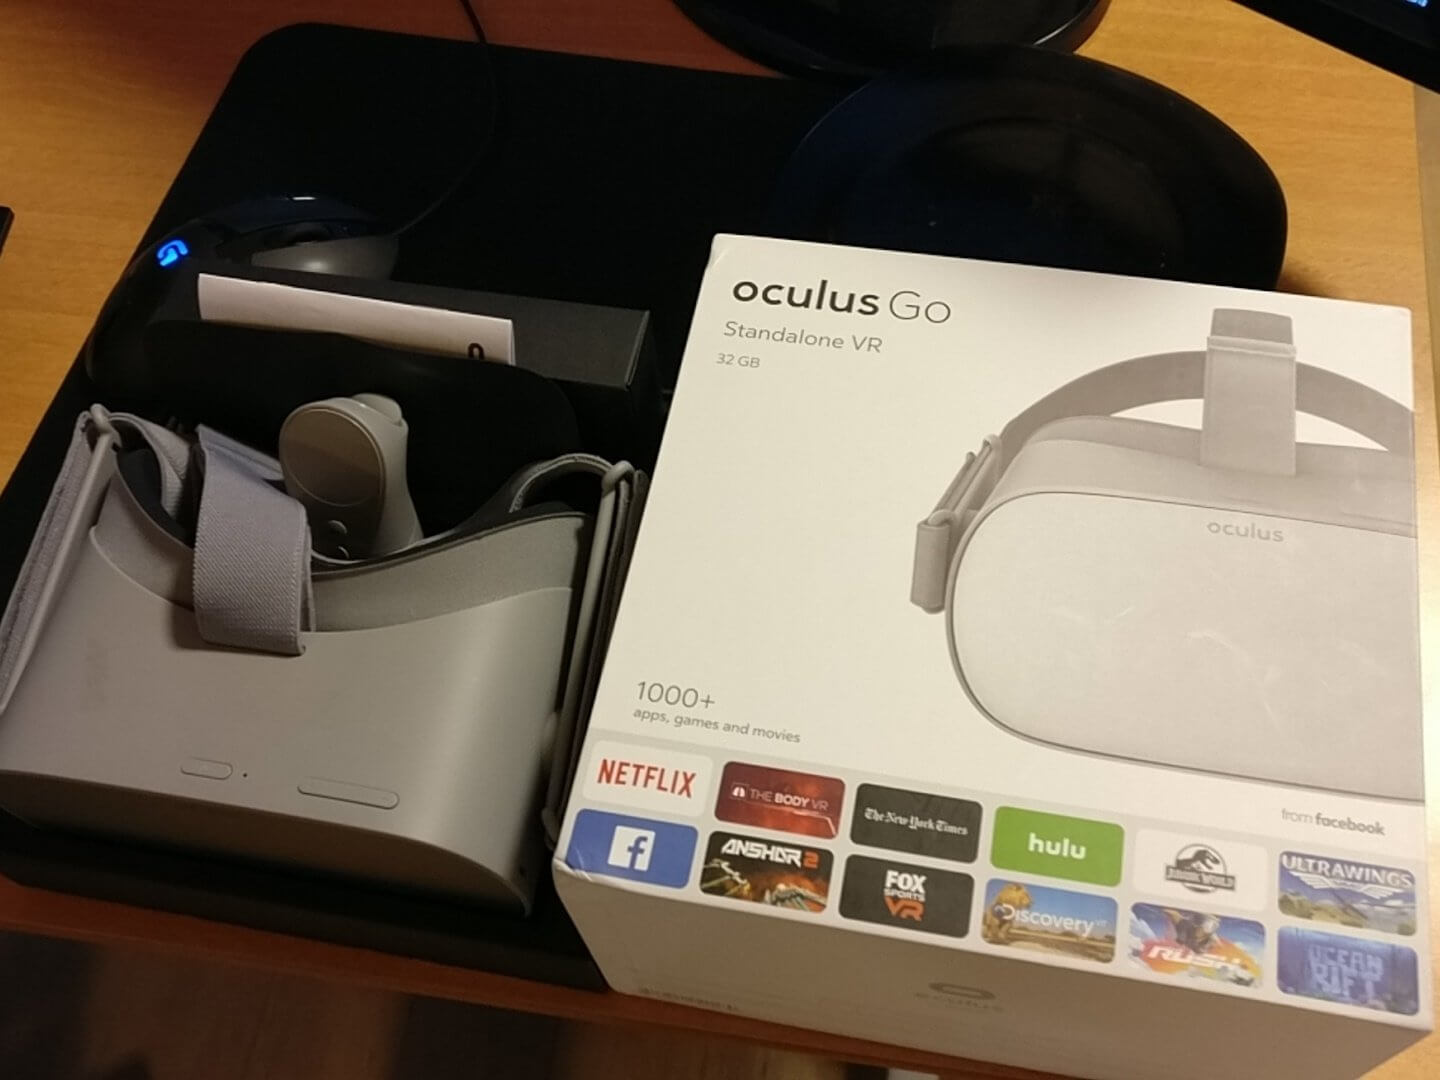 Leaked Oculus Go packaging suggests over 1,000 VR apps and